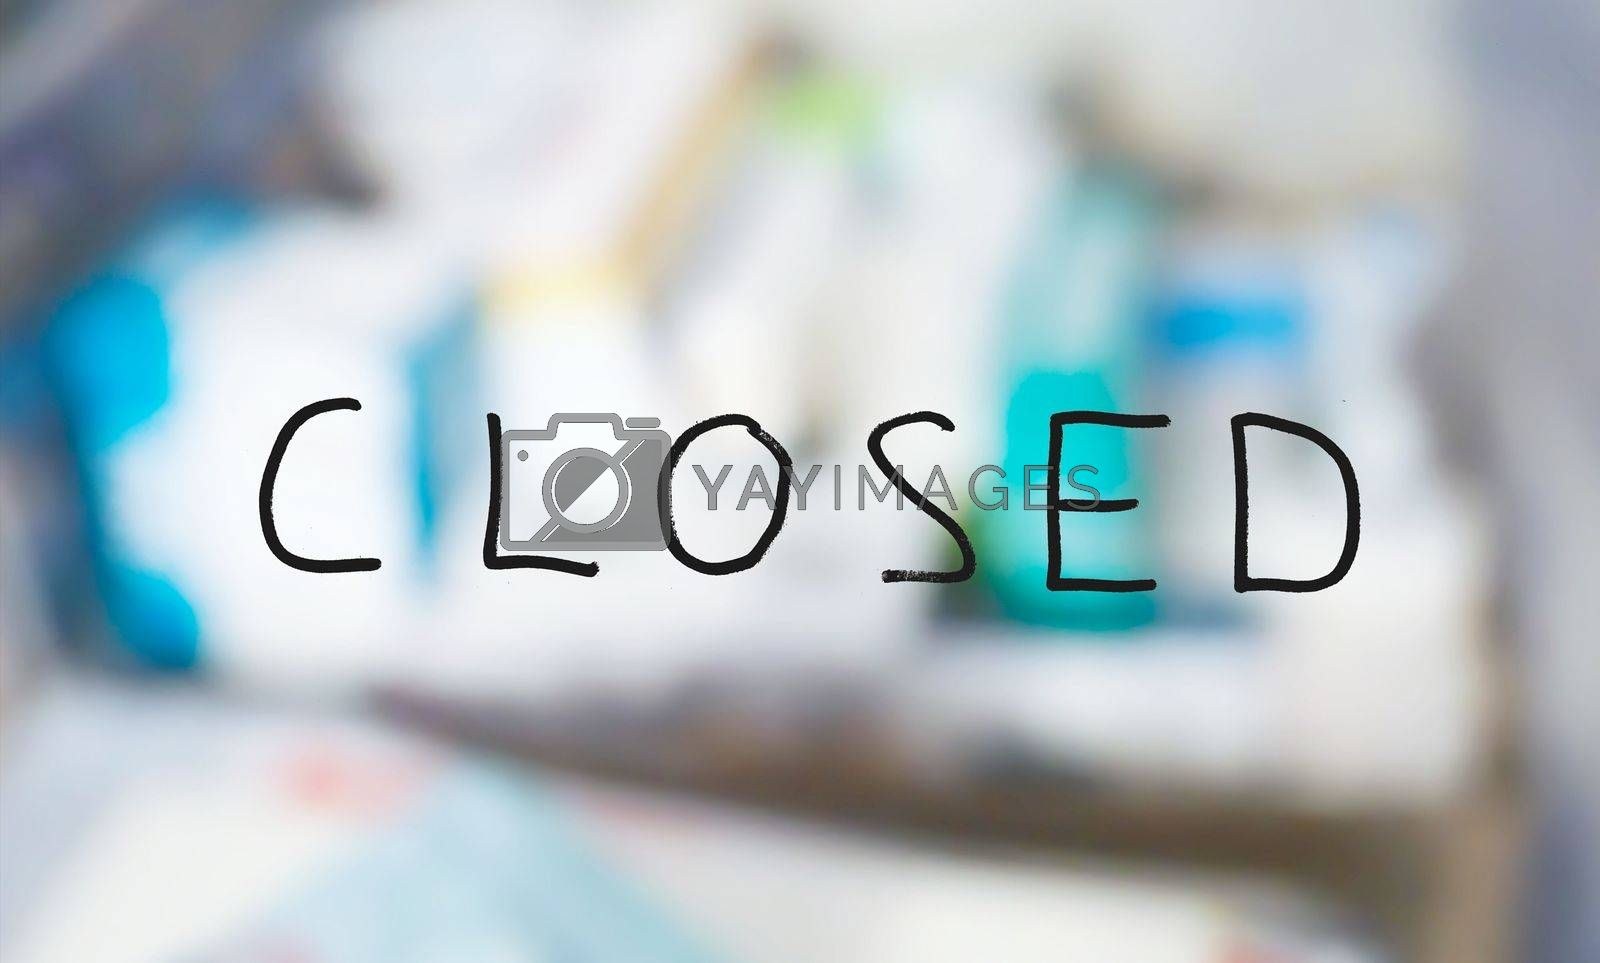 Handwritten closed sign on a shop window with blurred products in the background